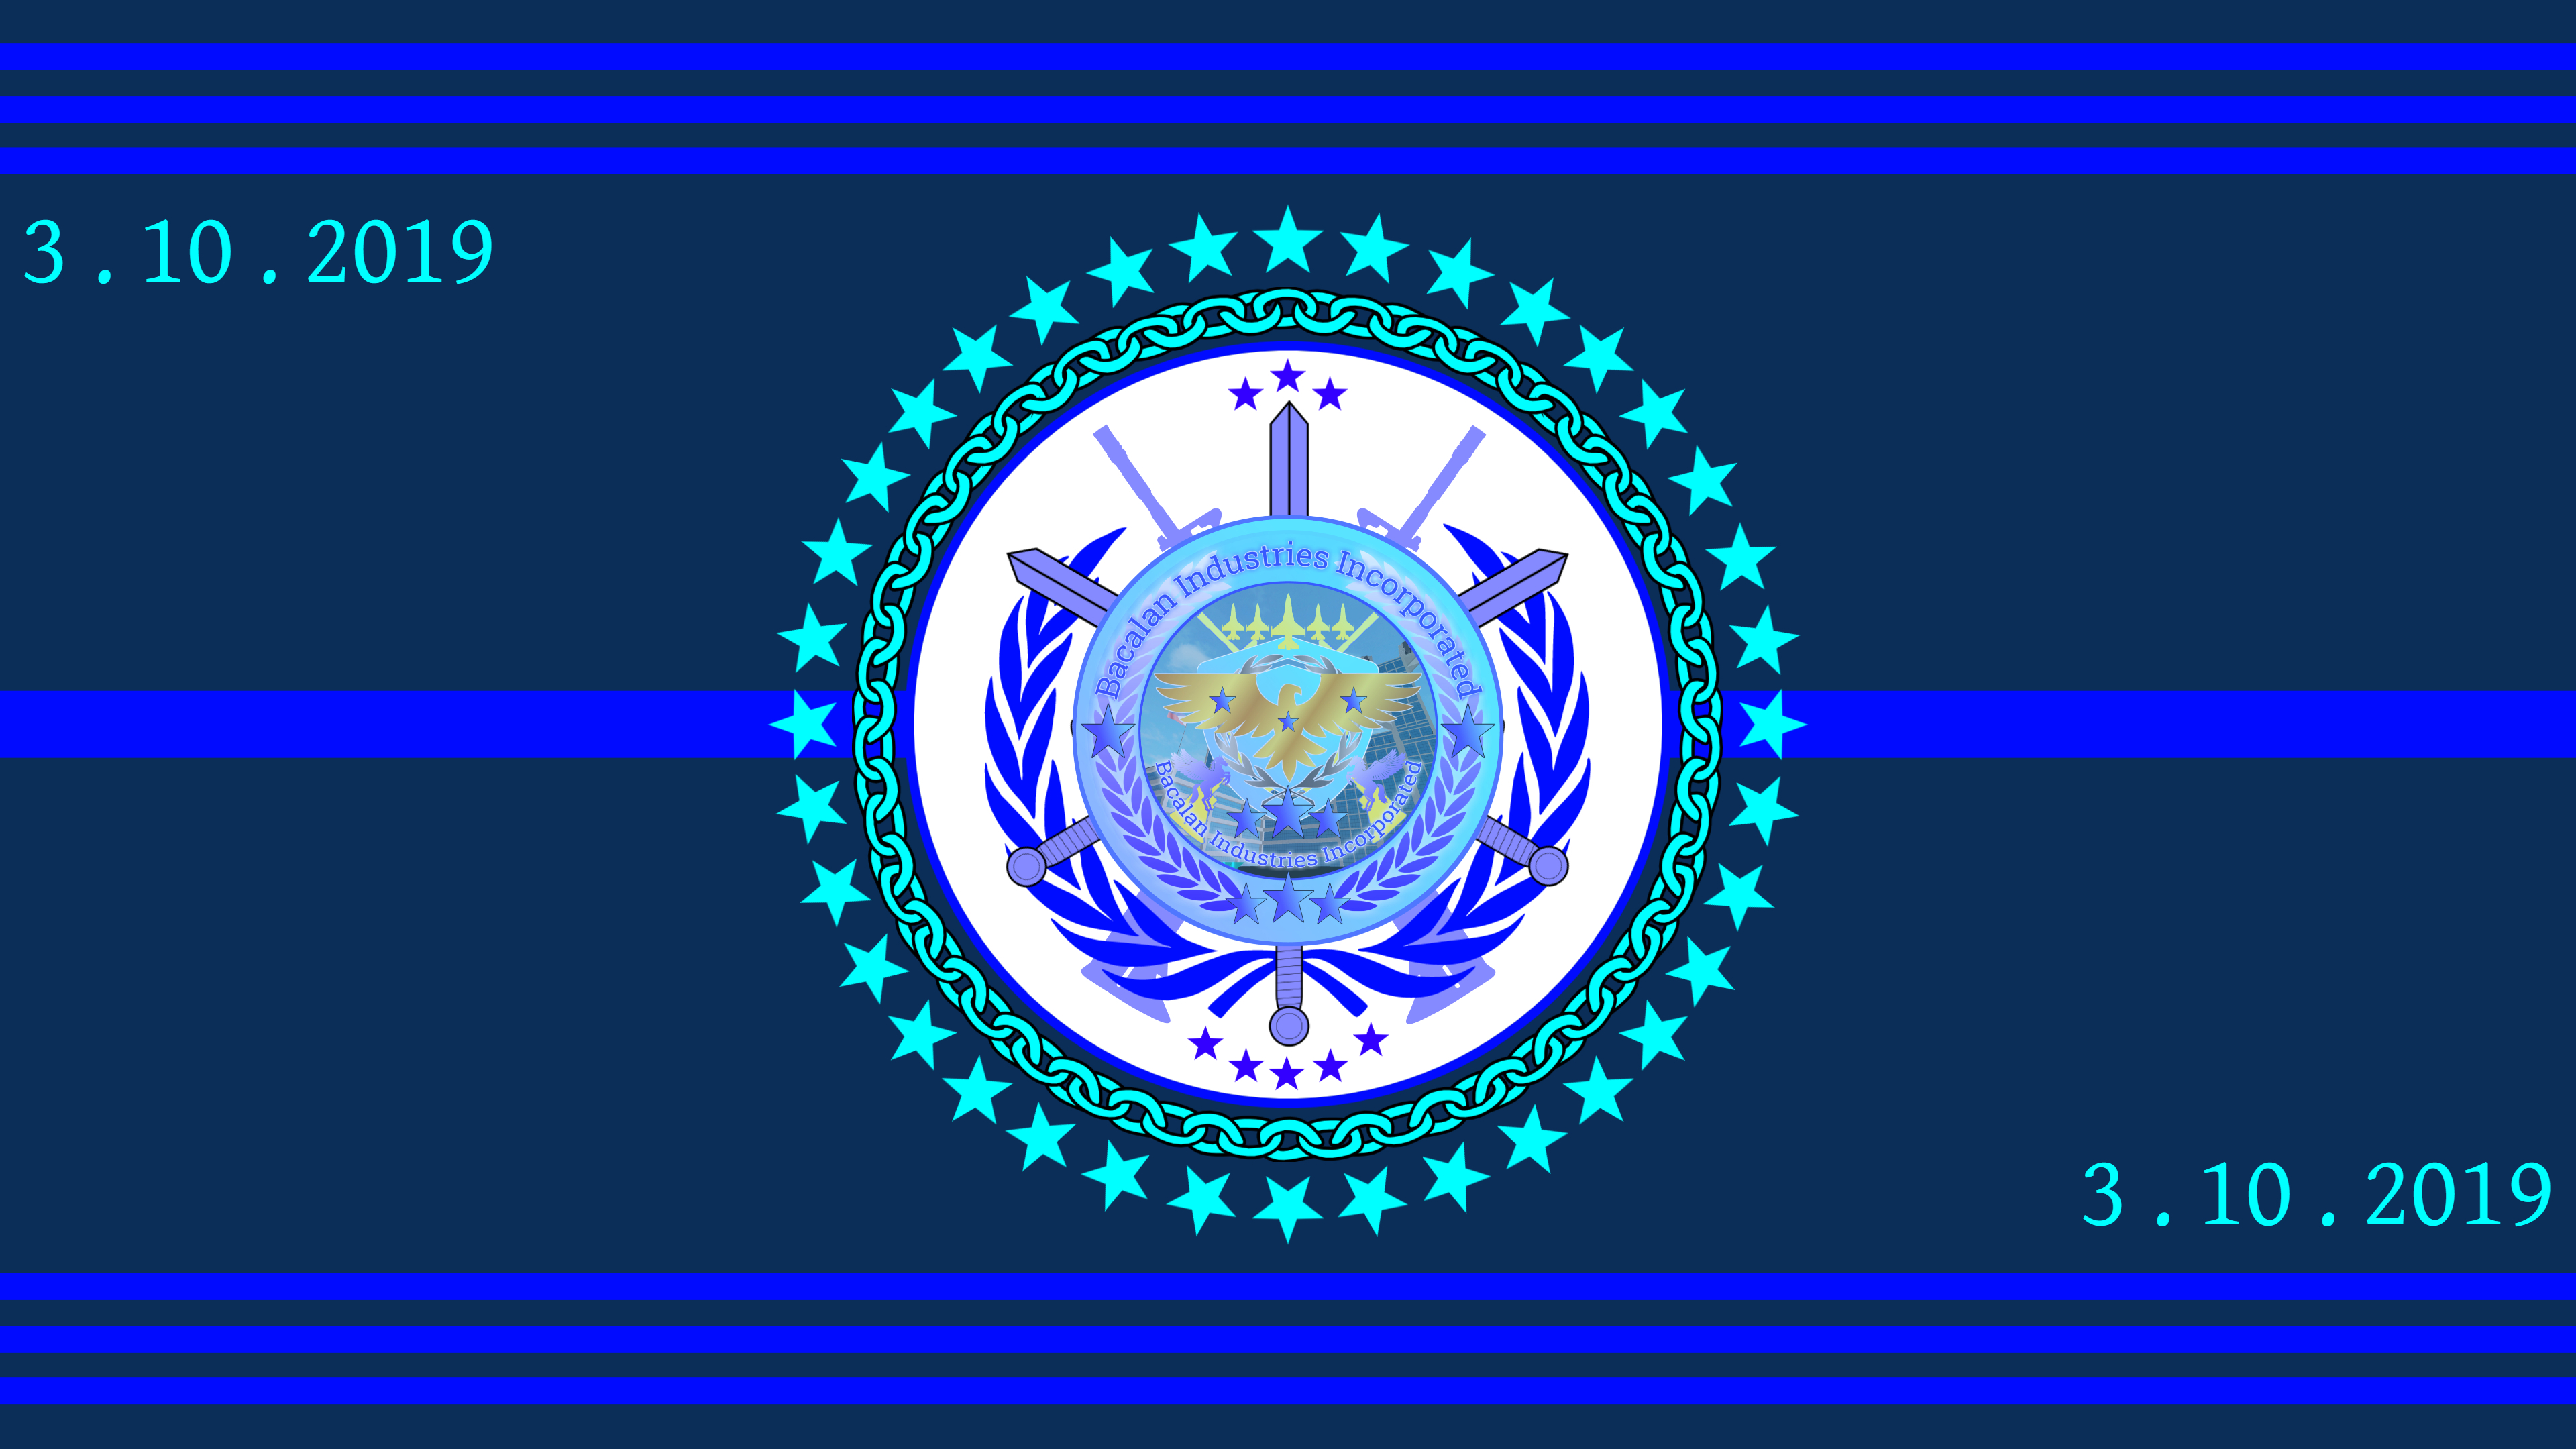 Grand Commander-in-Chief Officers of Bacalan Industries Incorporated Flag